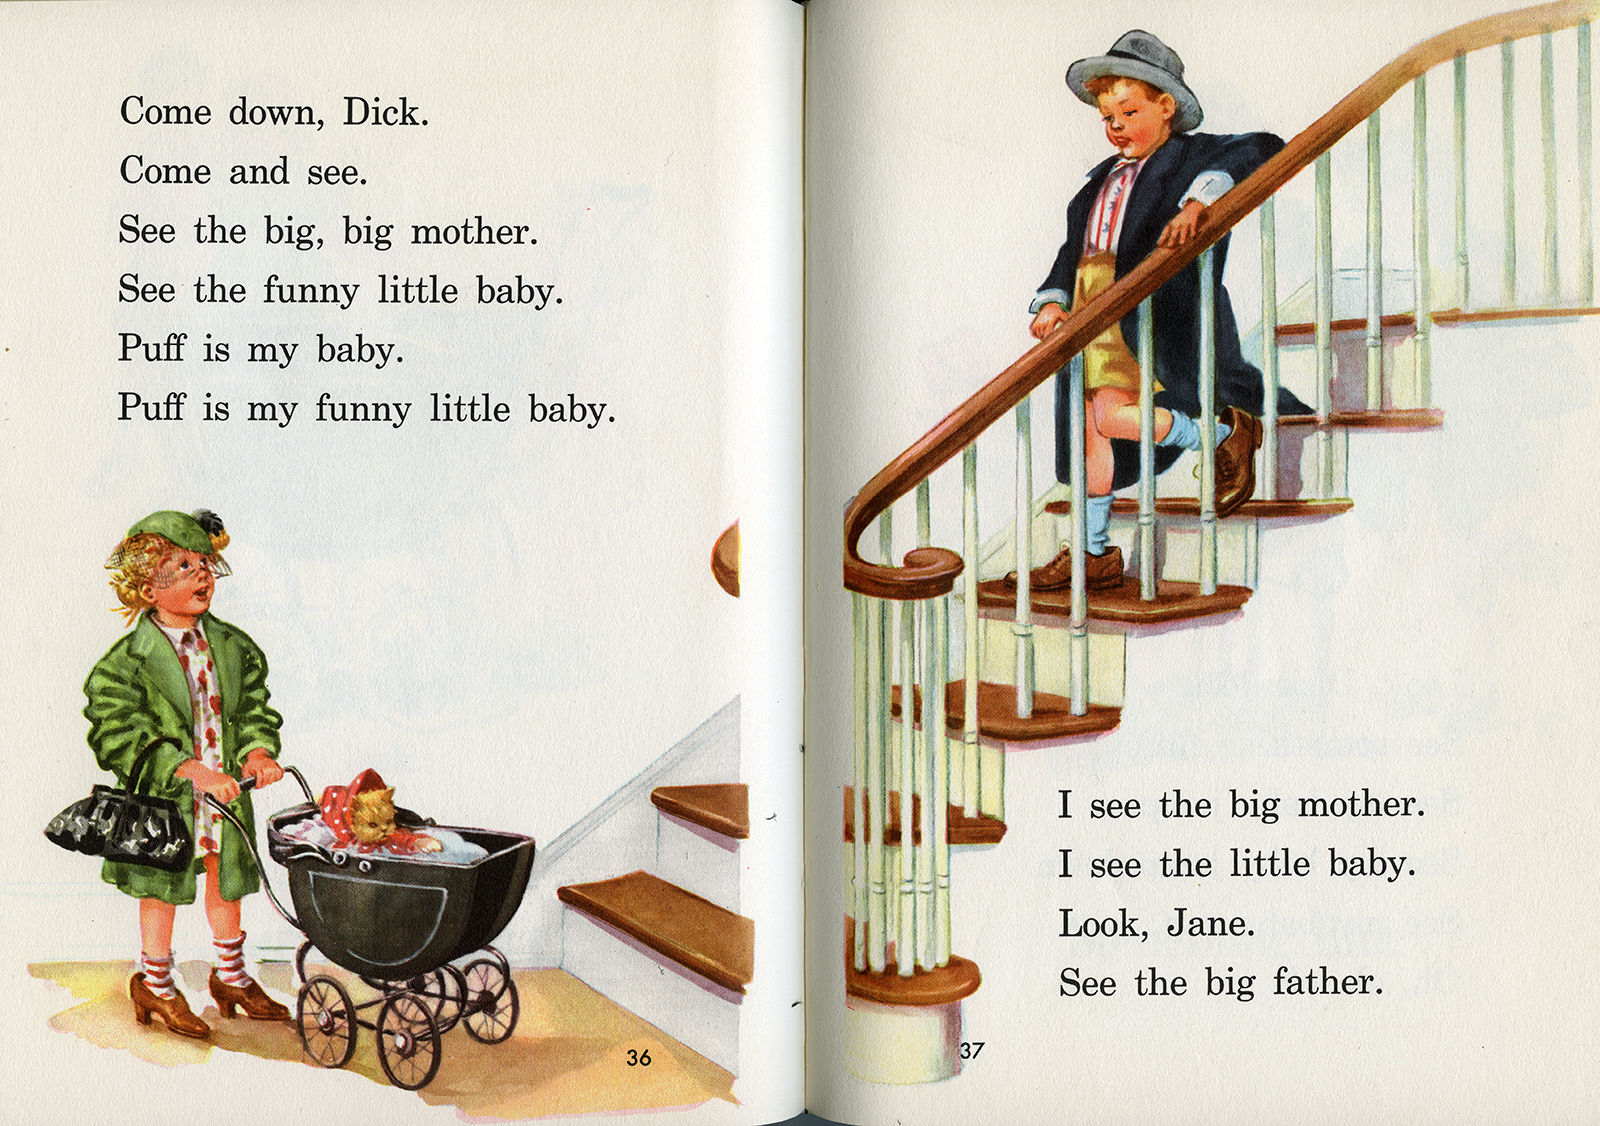 Dick and Jane Play Dad and Mom